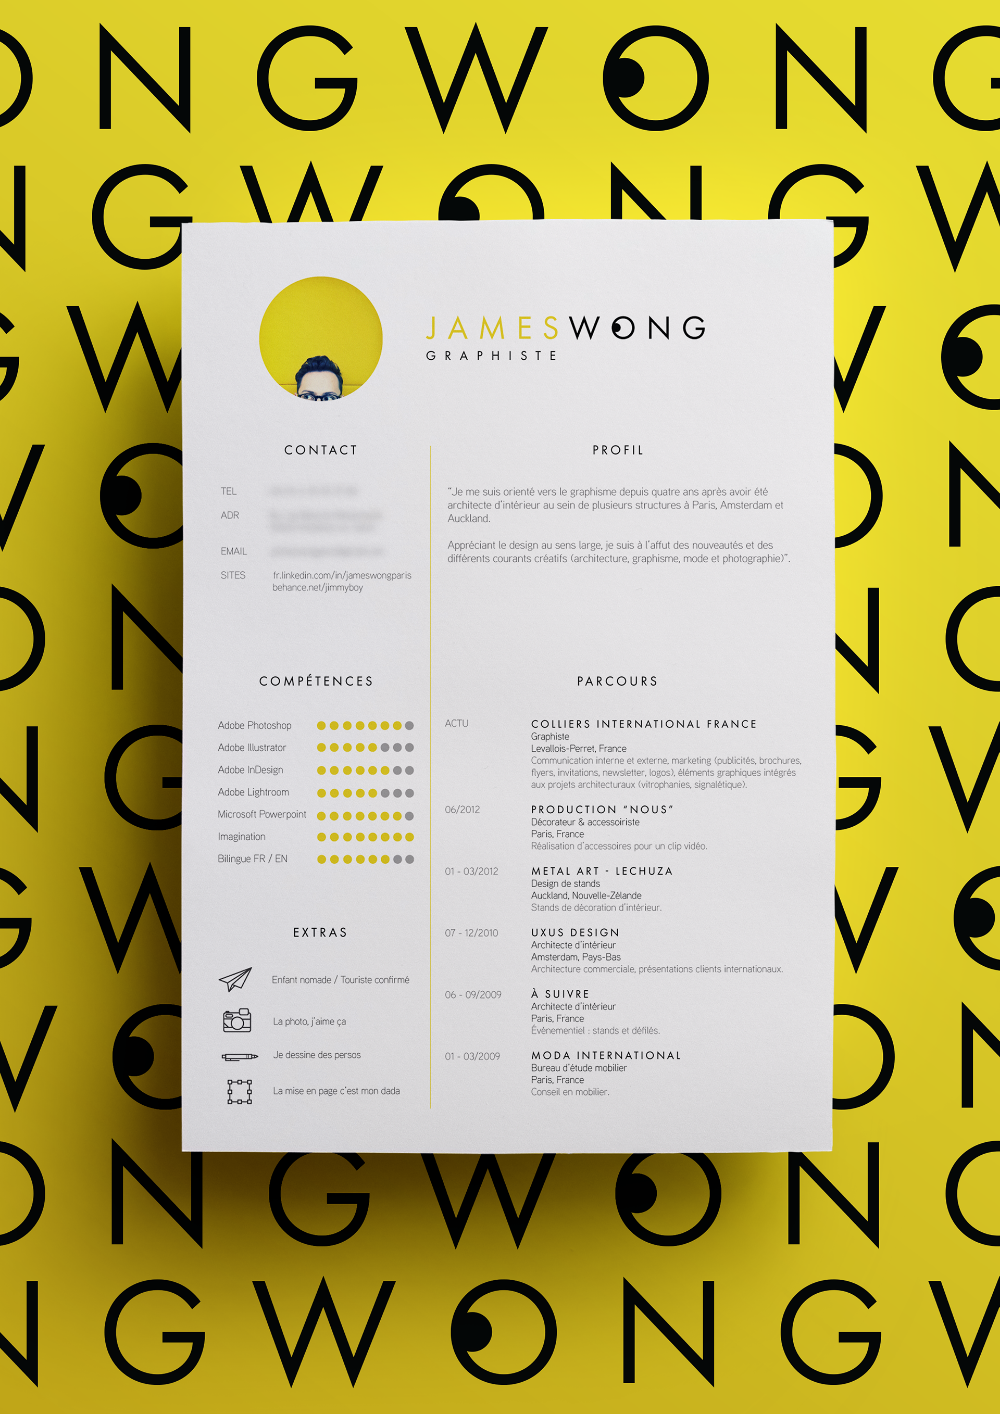 Curriculum Vitae On Behance If You Like This Cv Template Check Others On My Cv Template Board Thanks In 2020 Graphic Design Resume Graphic Design Cv Resume Design